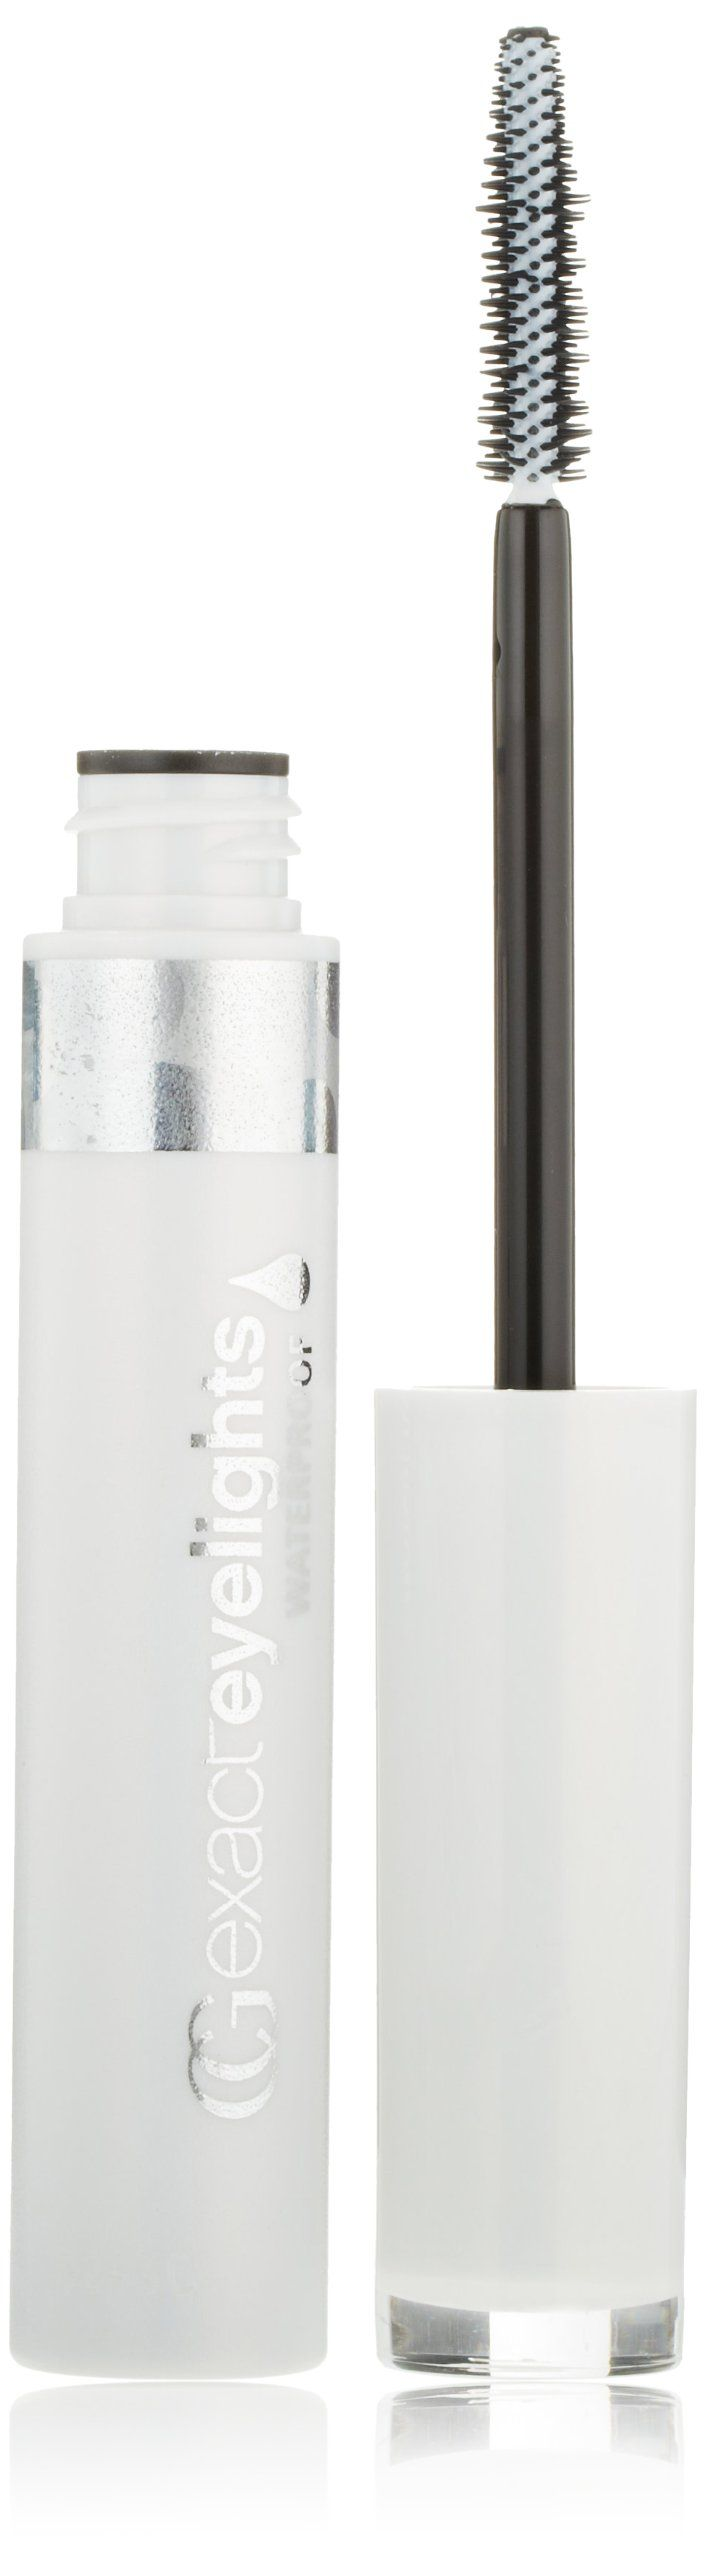 CoverGirl Exact EyeLights Waterproof Mascara, Black Sapphire 735 (for Blue Eyes), 0.24-Ounce Packages (Pack of 3). Get 4X Brighter Eyes vs. bare lashes. Unique mascara formula with micro-color spheres & metallics specially designed to reflect your eye color. No-clump exact brush. Waterproof. Four eyelighting shades - for blues, browns, hazels and greens.